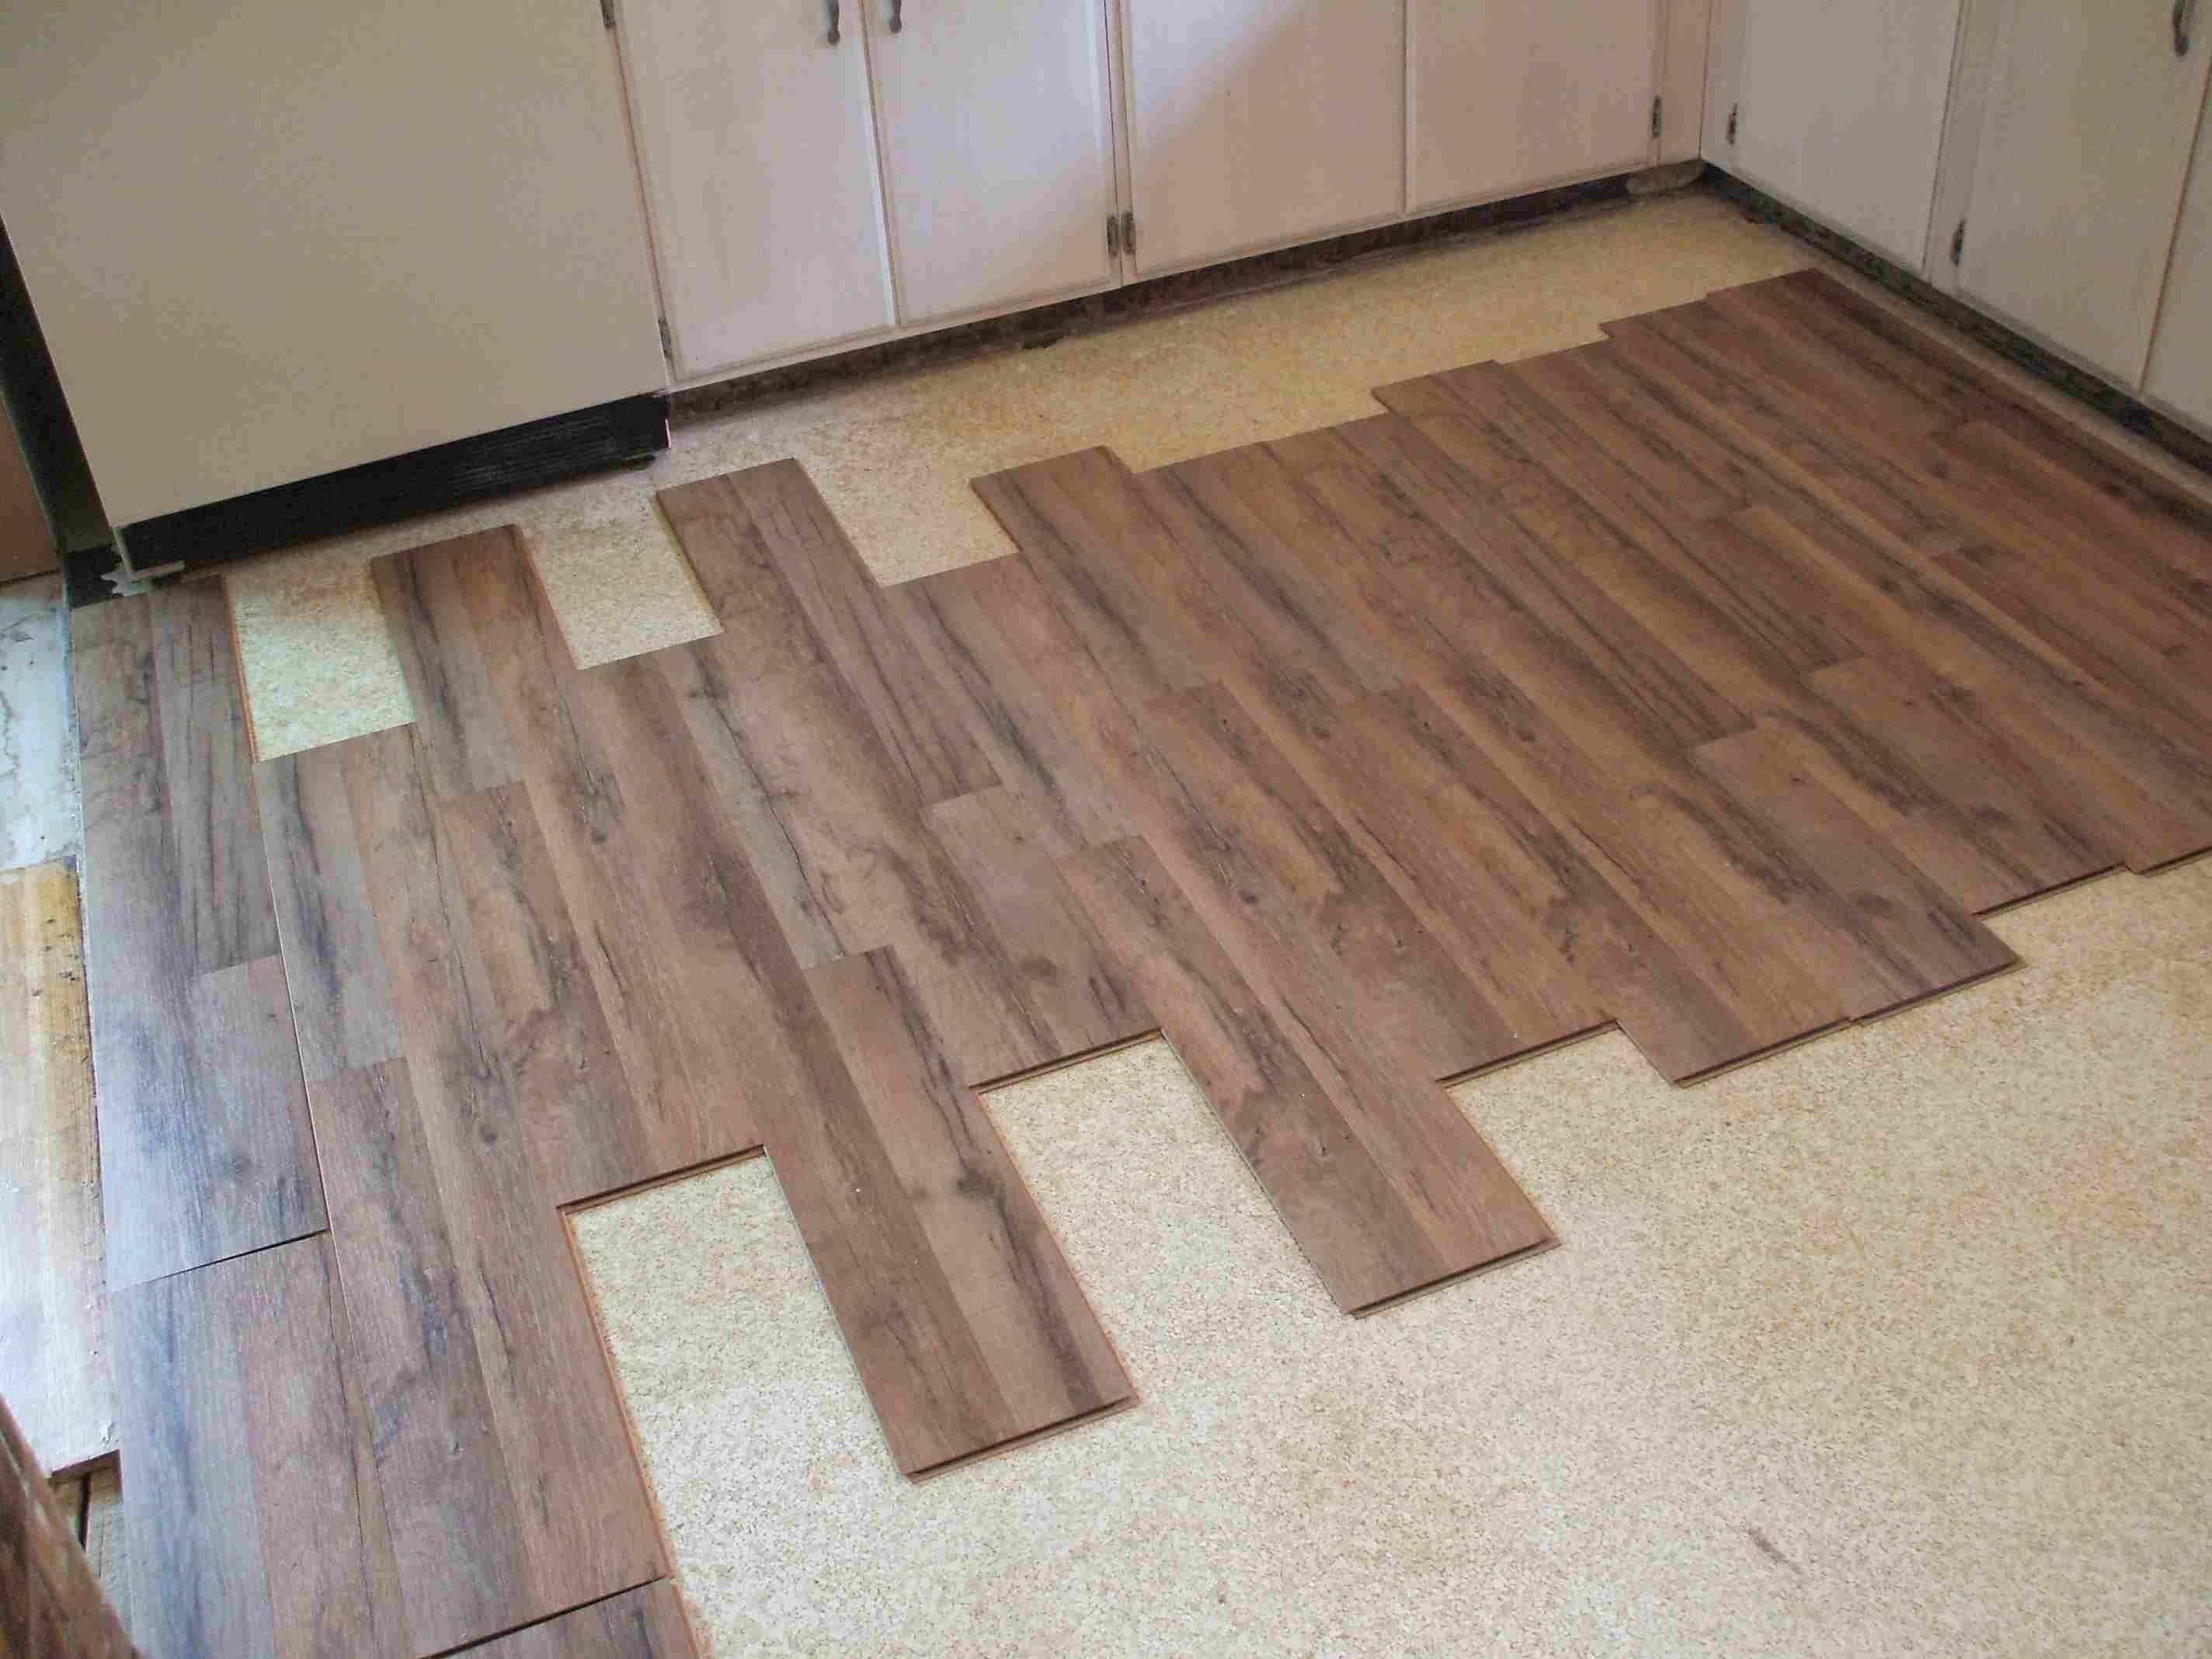 Awesome How To Calculate Square Feet For Laminate Flooring